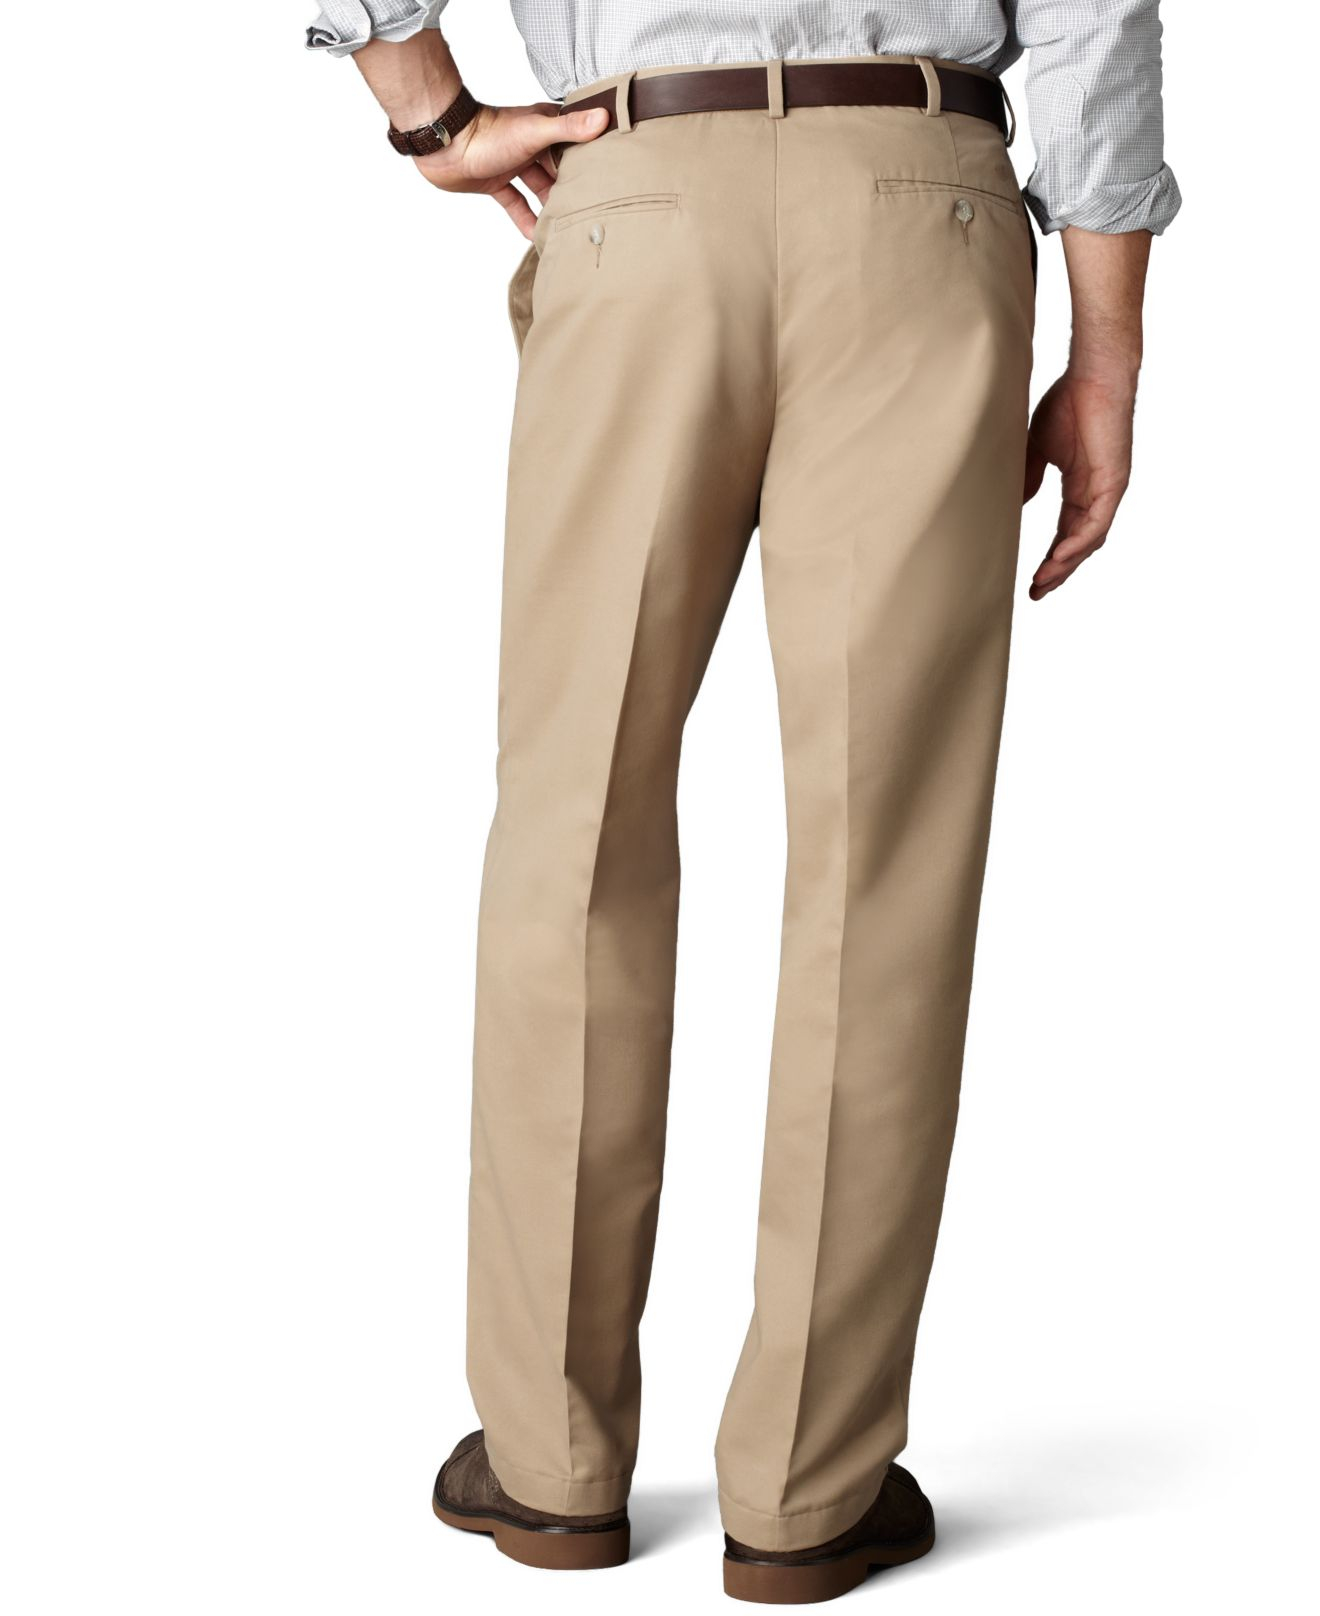 Dockers D4 Relaxed Fit Comfort Khaki Flat Front Pants in Natural ...